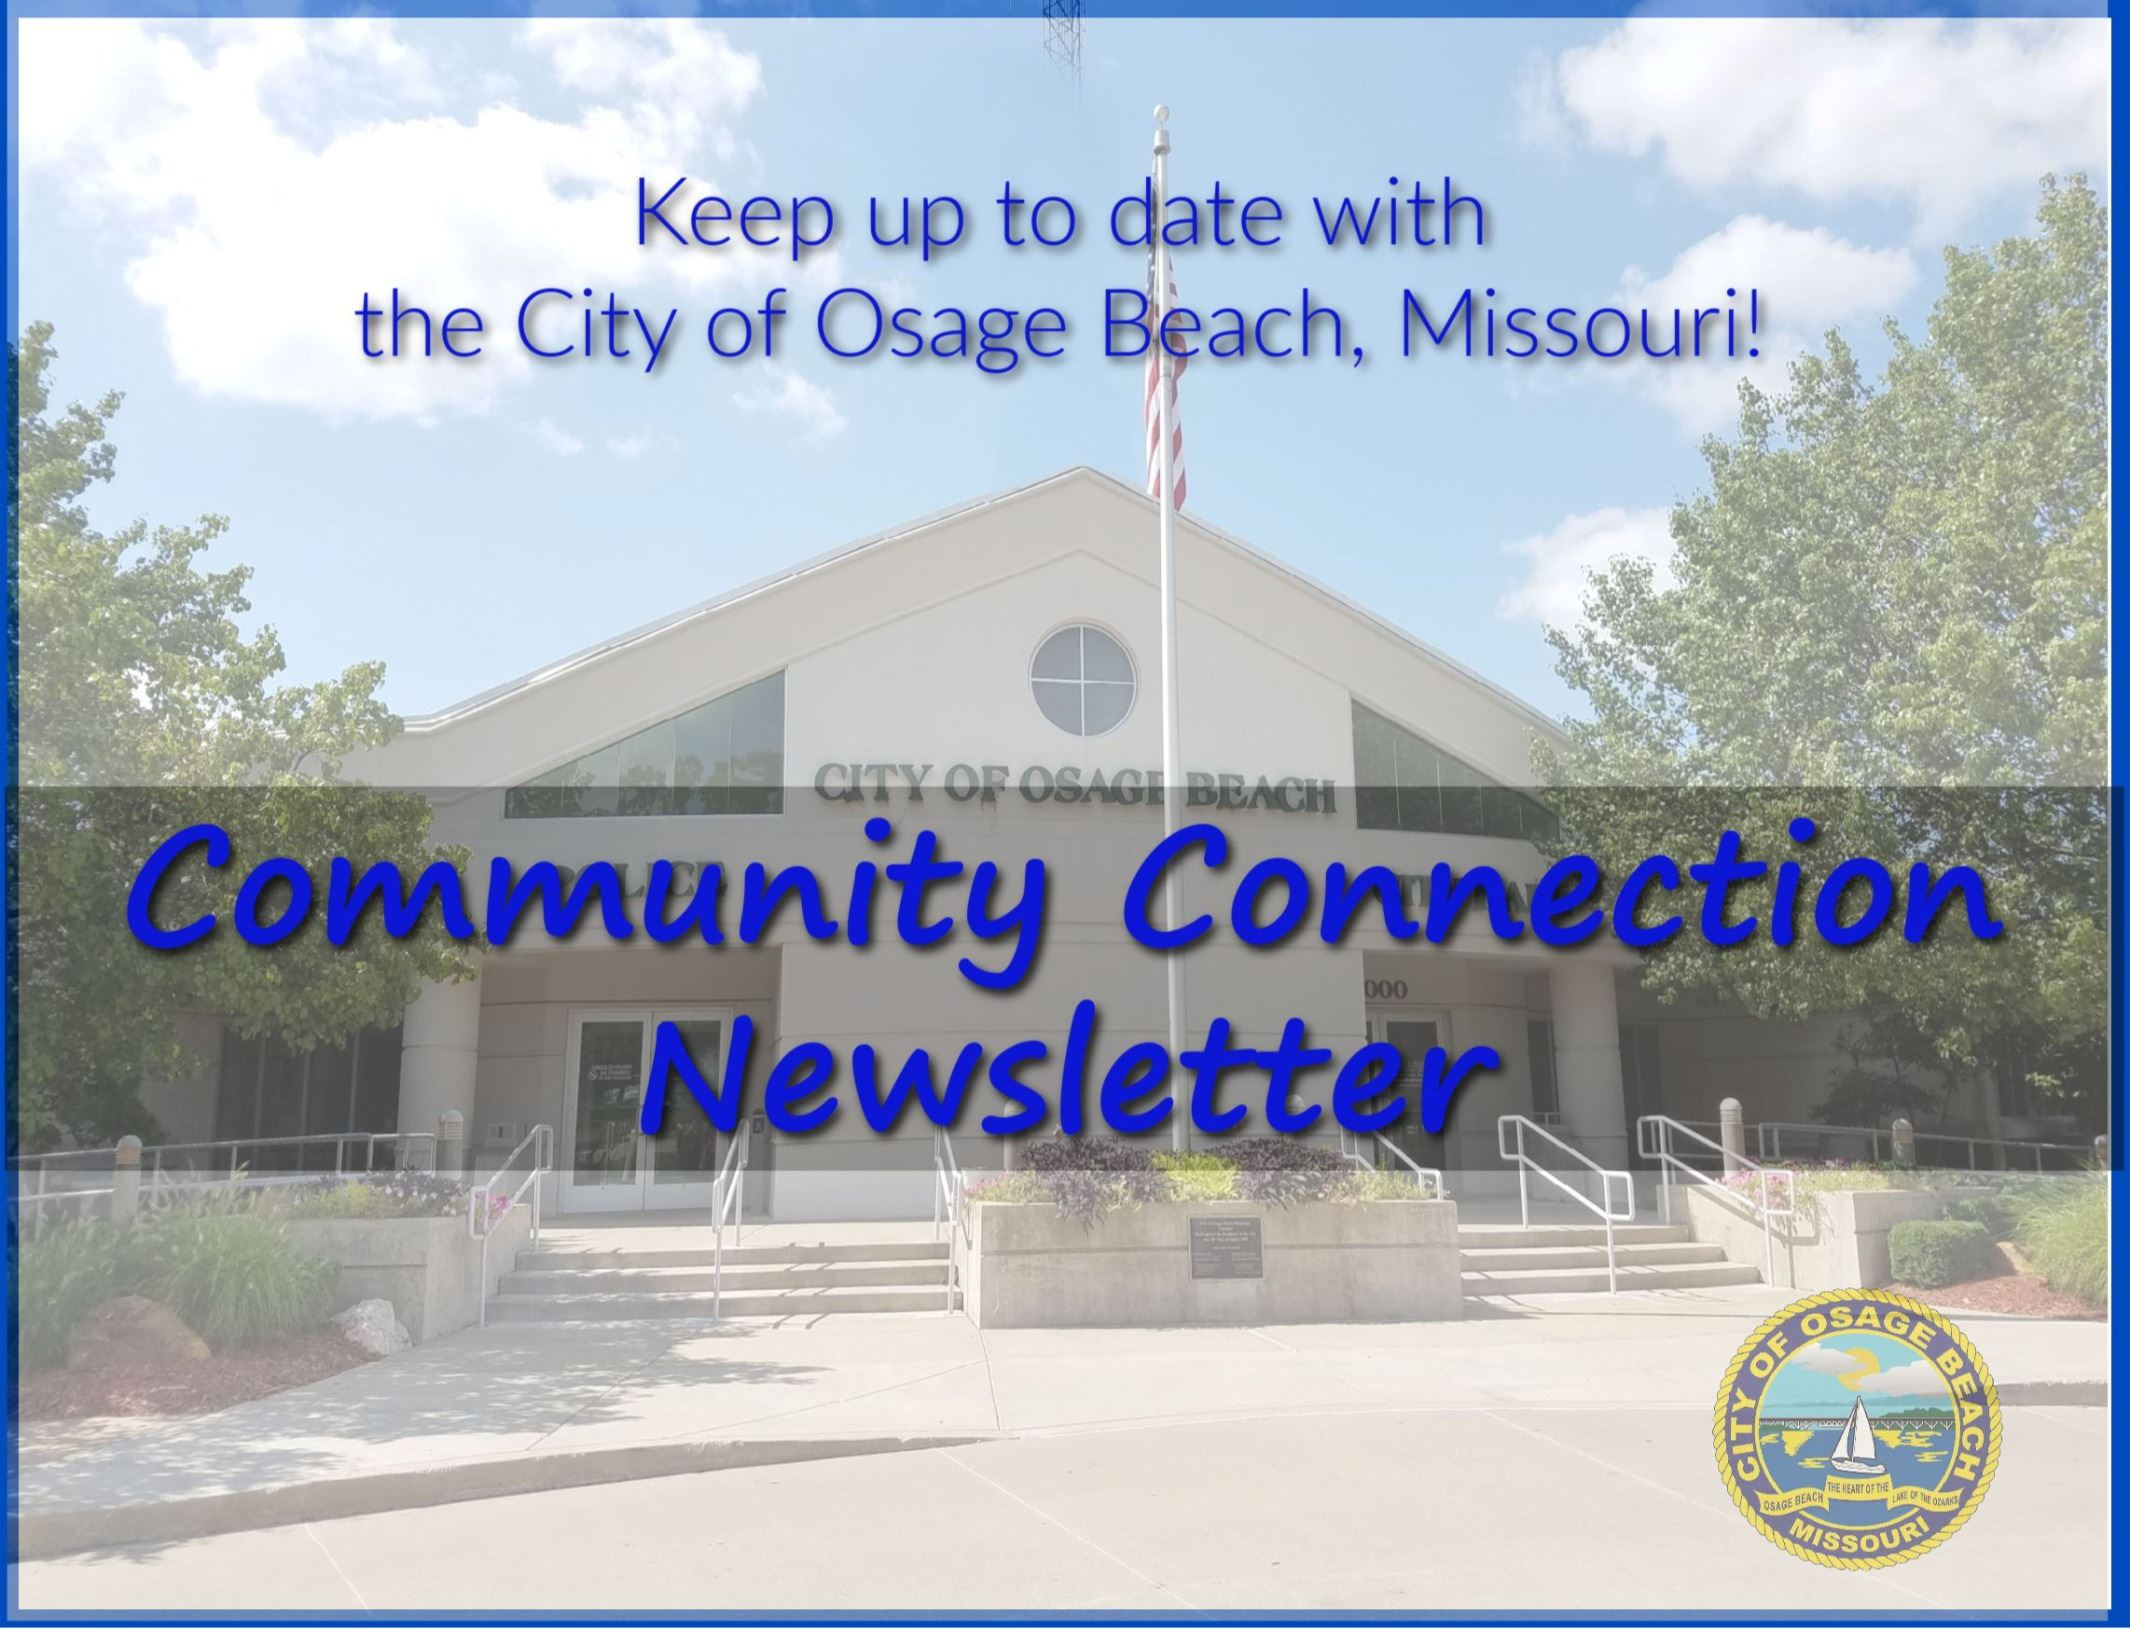 Community Connection Newsletter Title